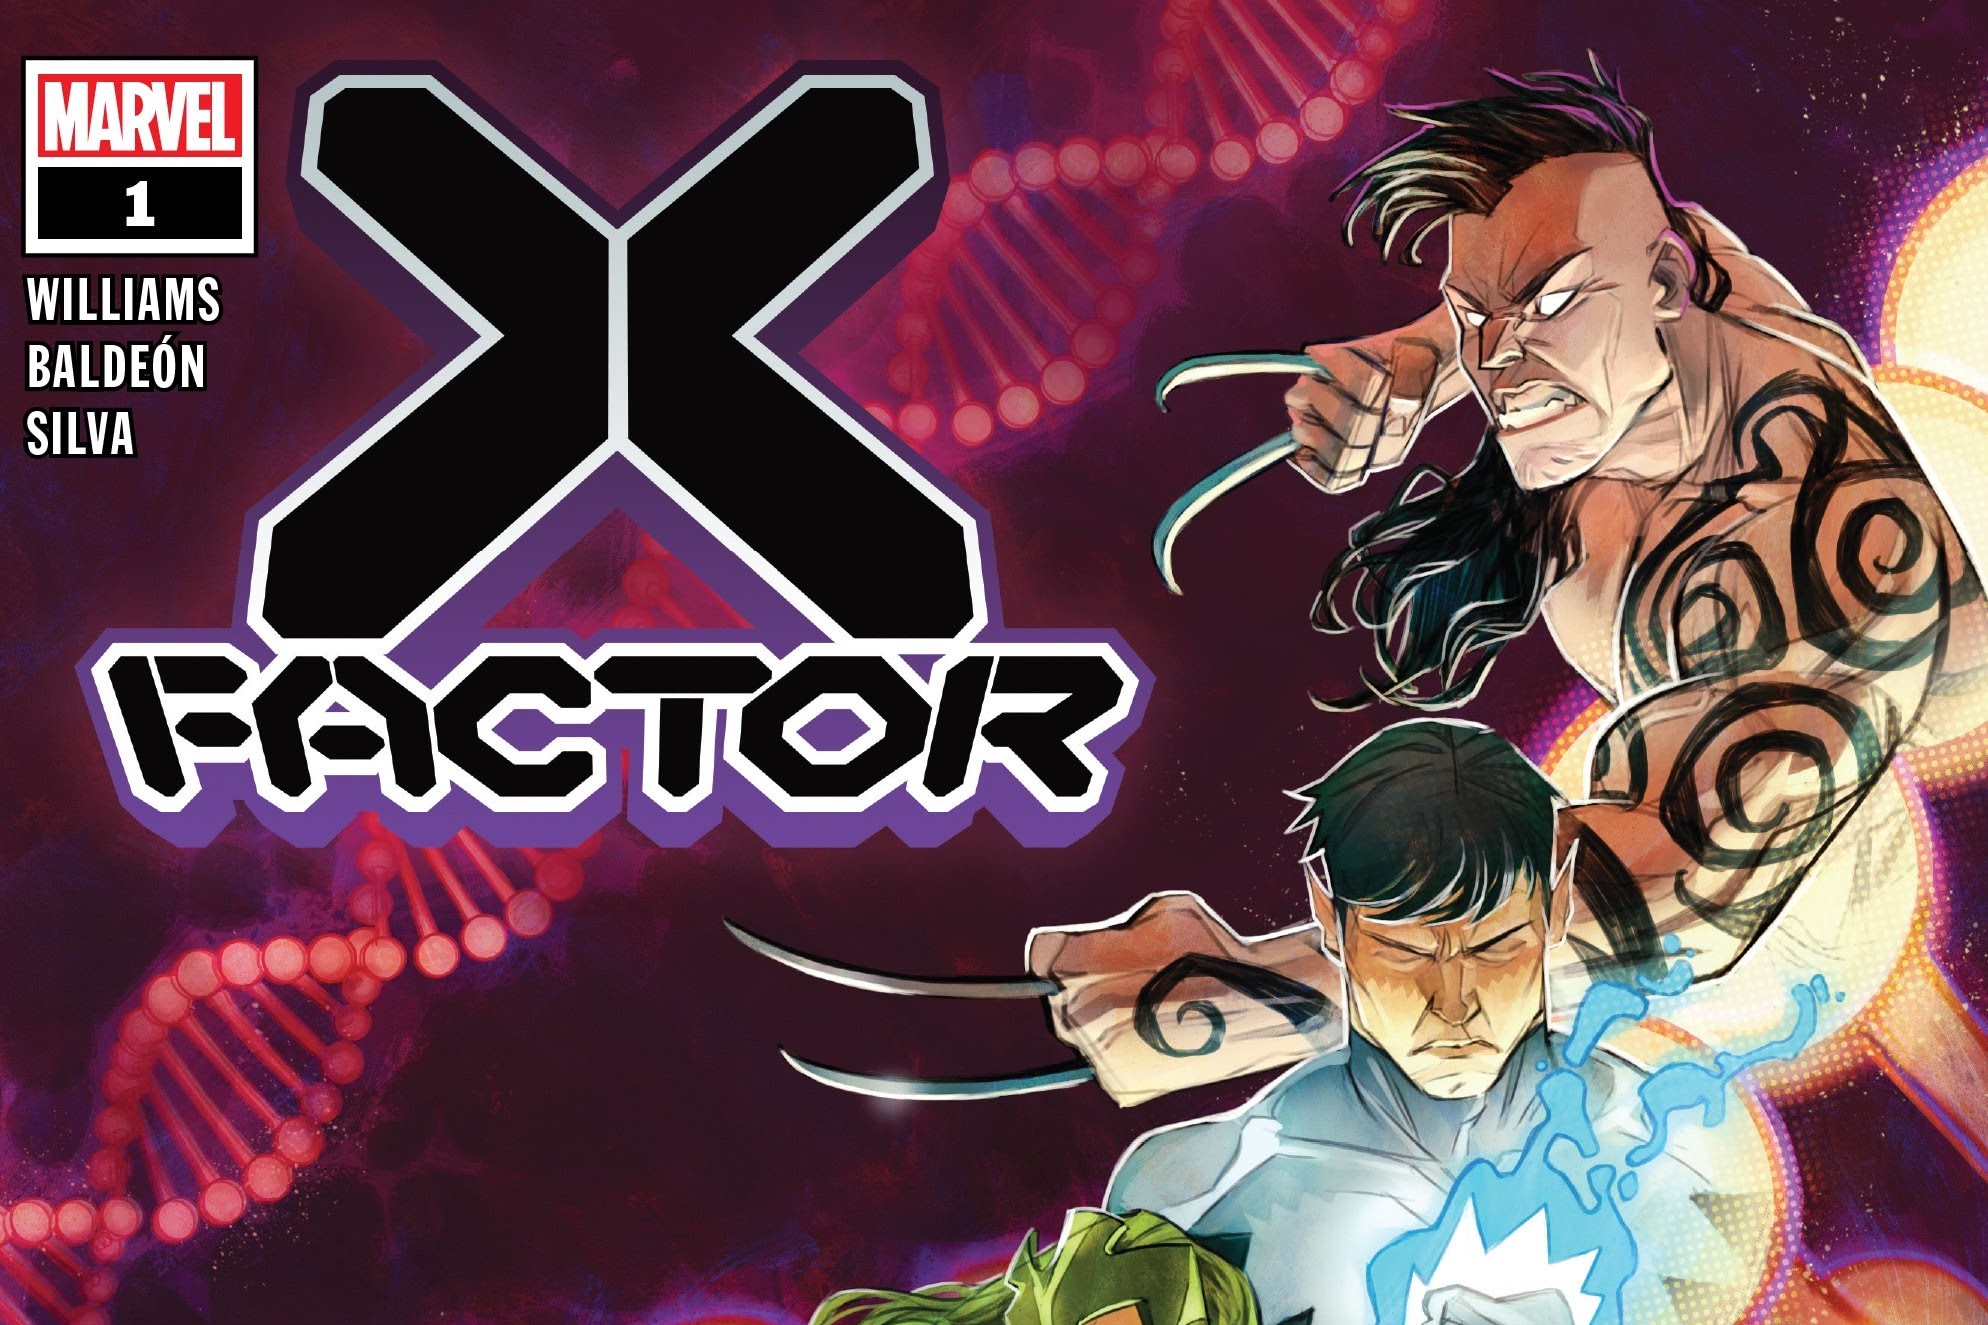 Daken and Northstar on the cover of X-Factor #1, Marvel Comics (2020).